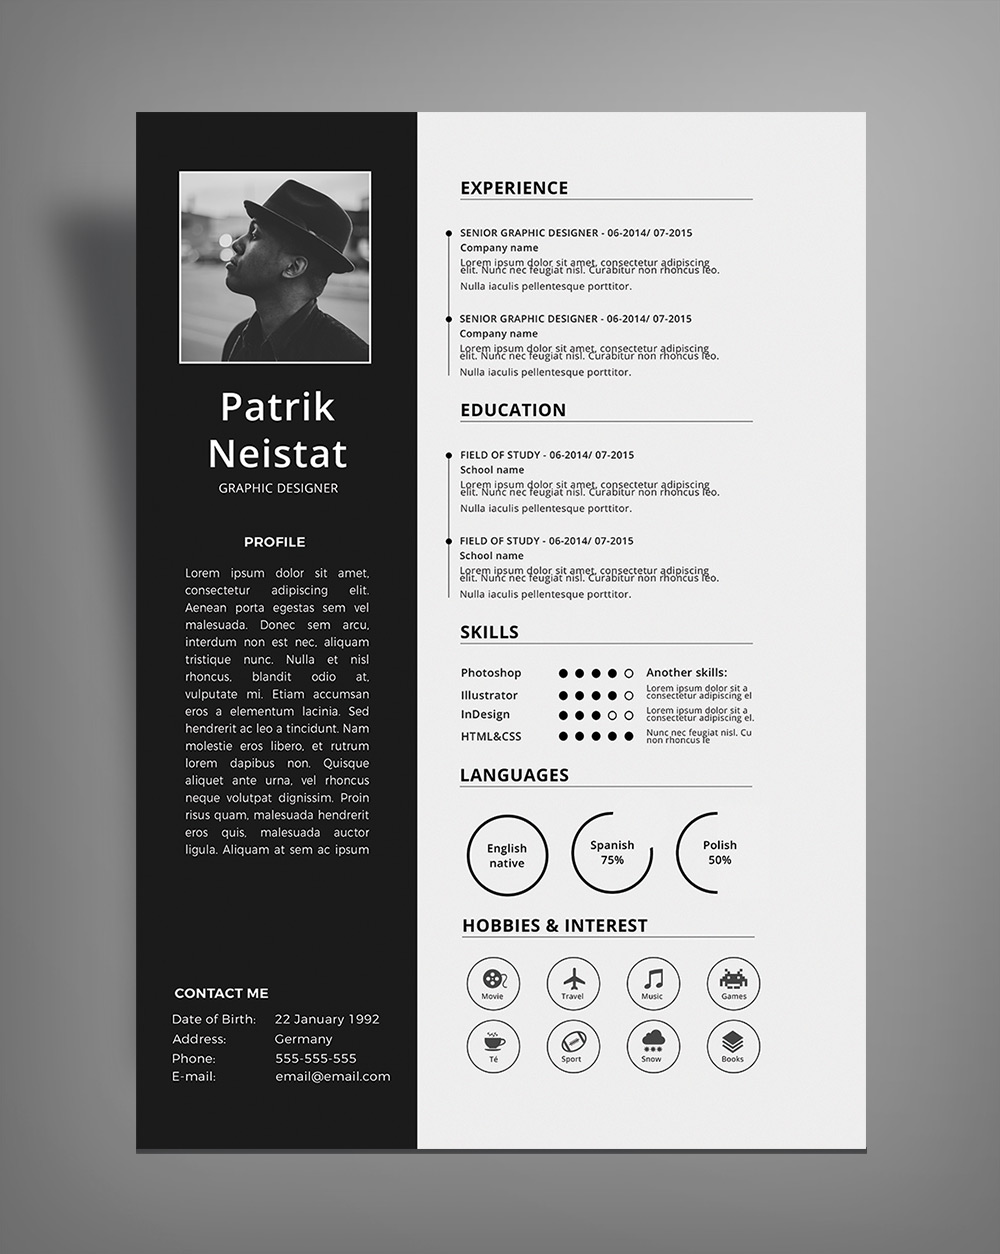 simple resume cv design template psd file good resume simple resume cv design template psd file